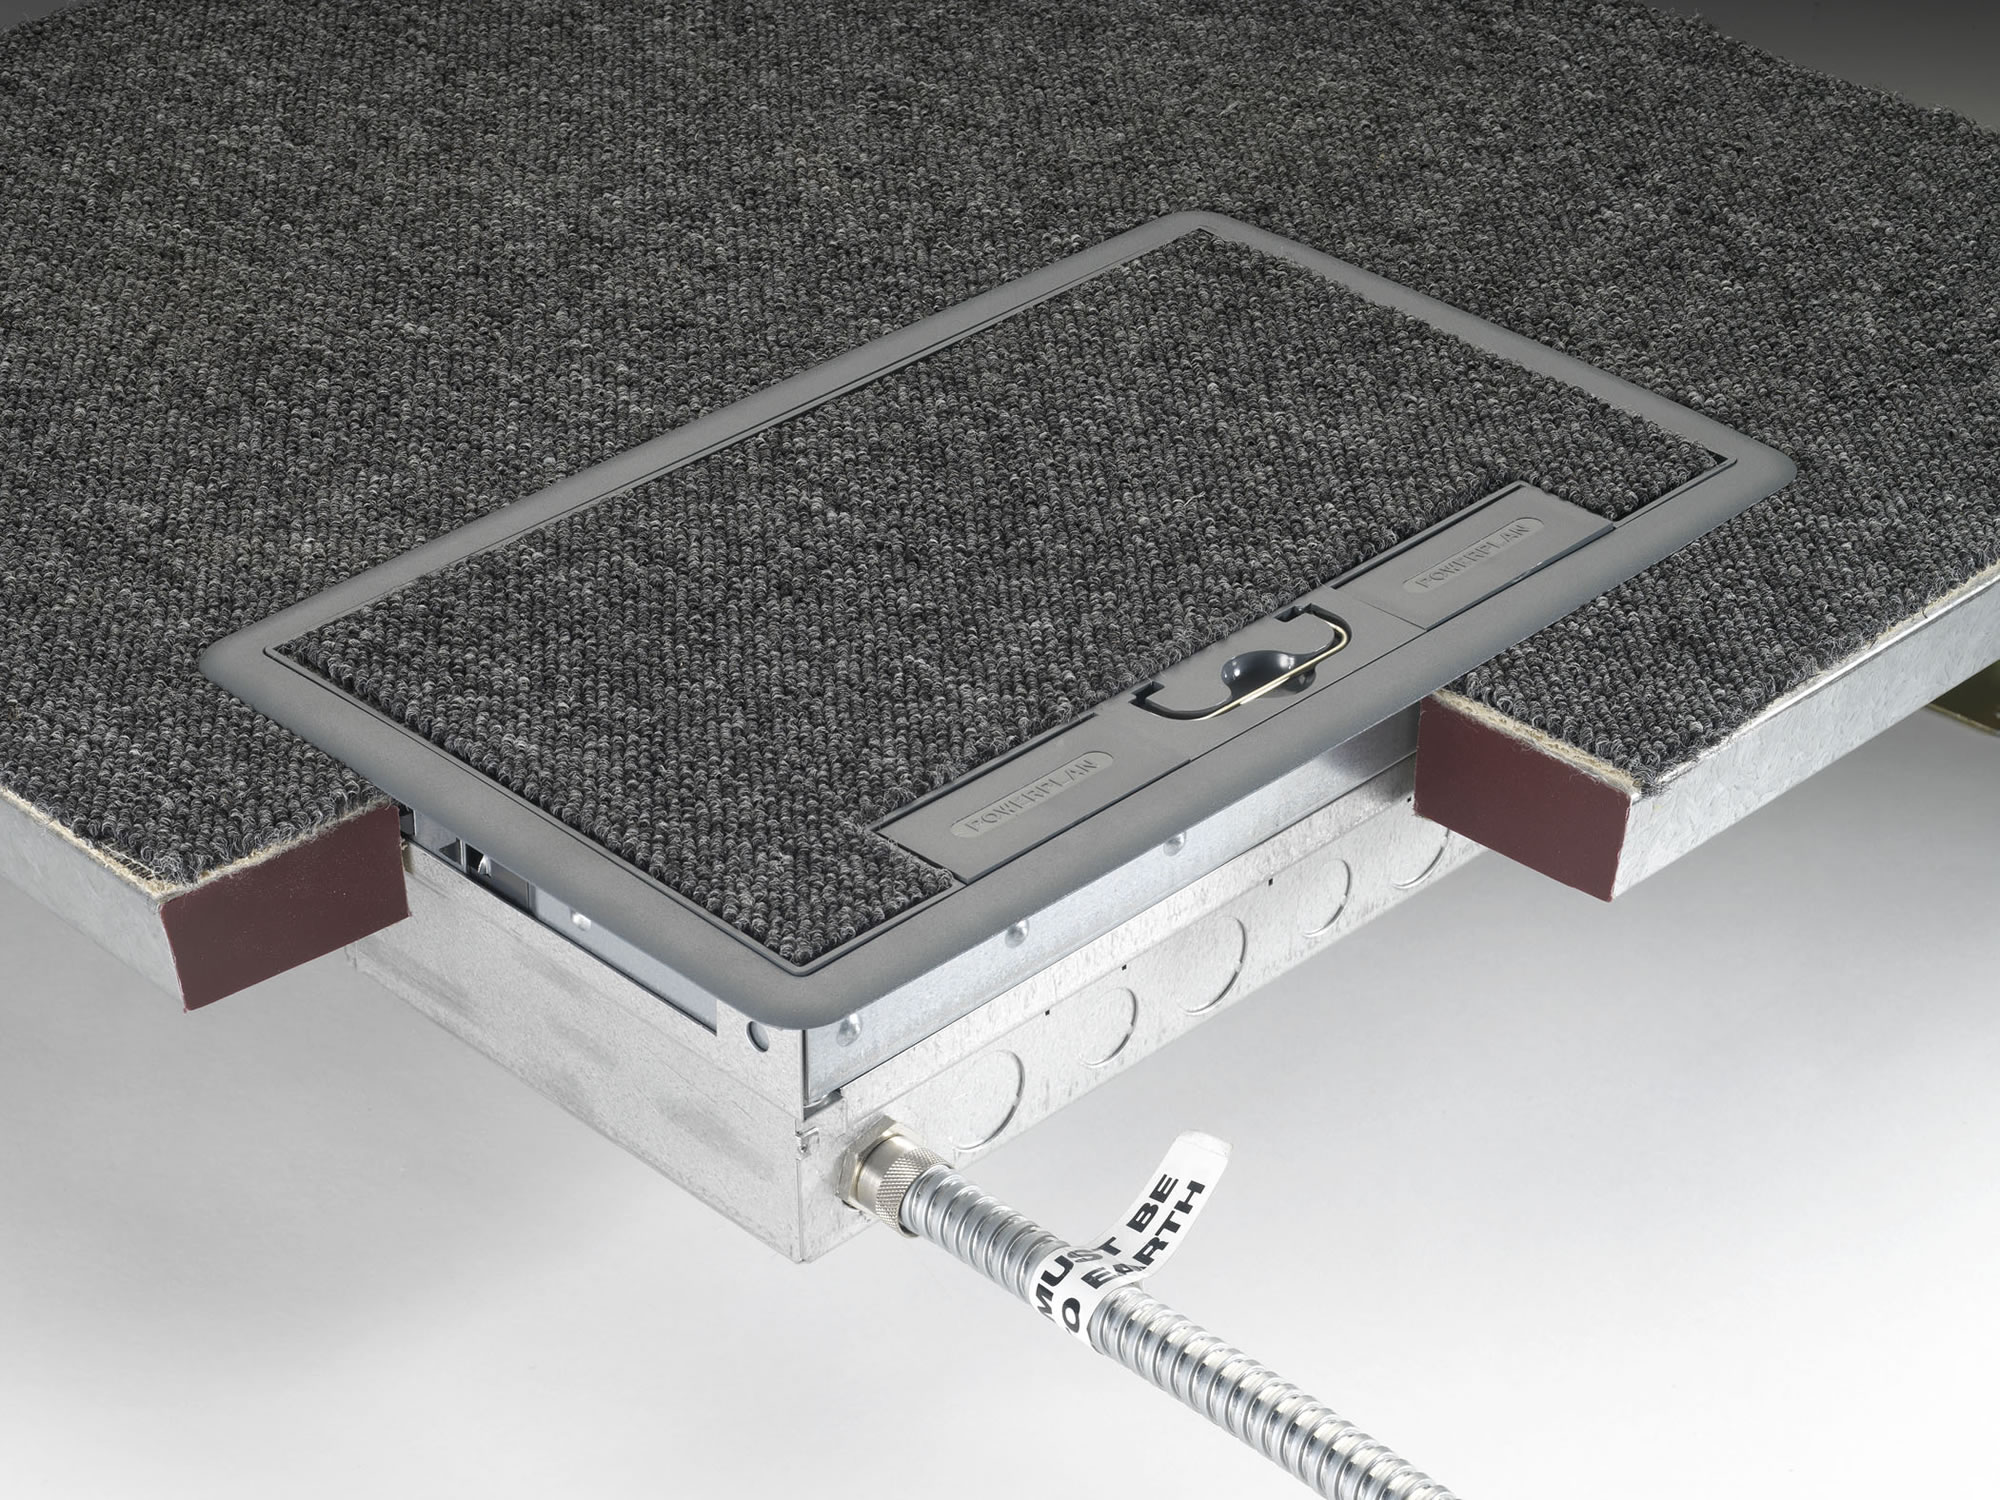 Floor Box In Situ with Conduit